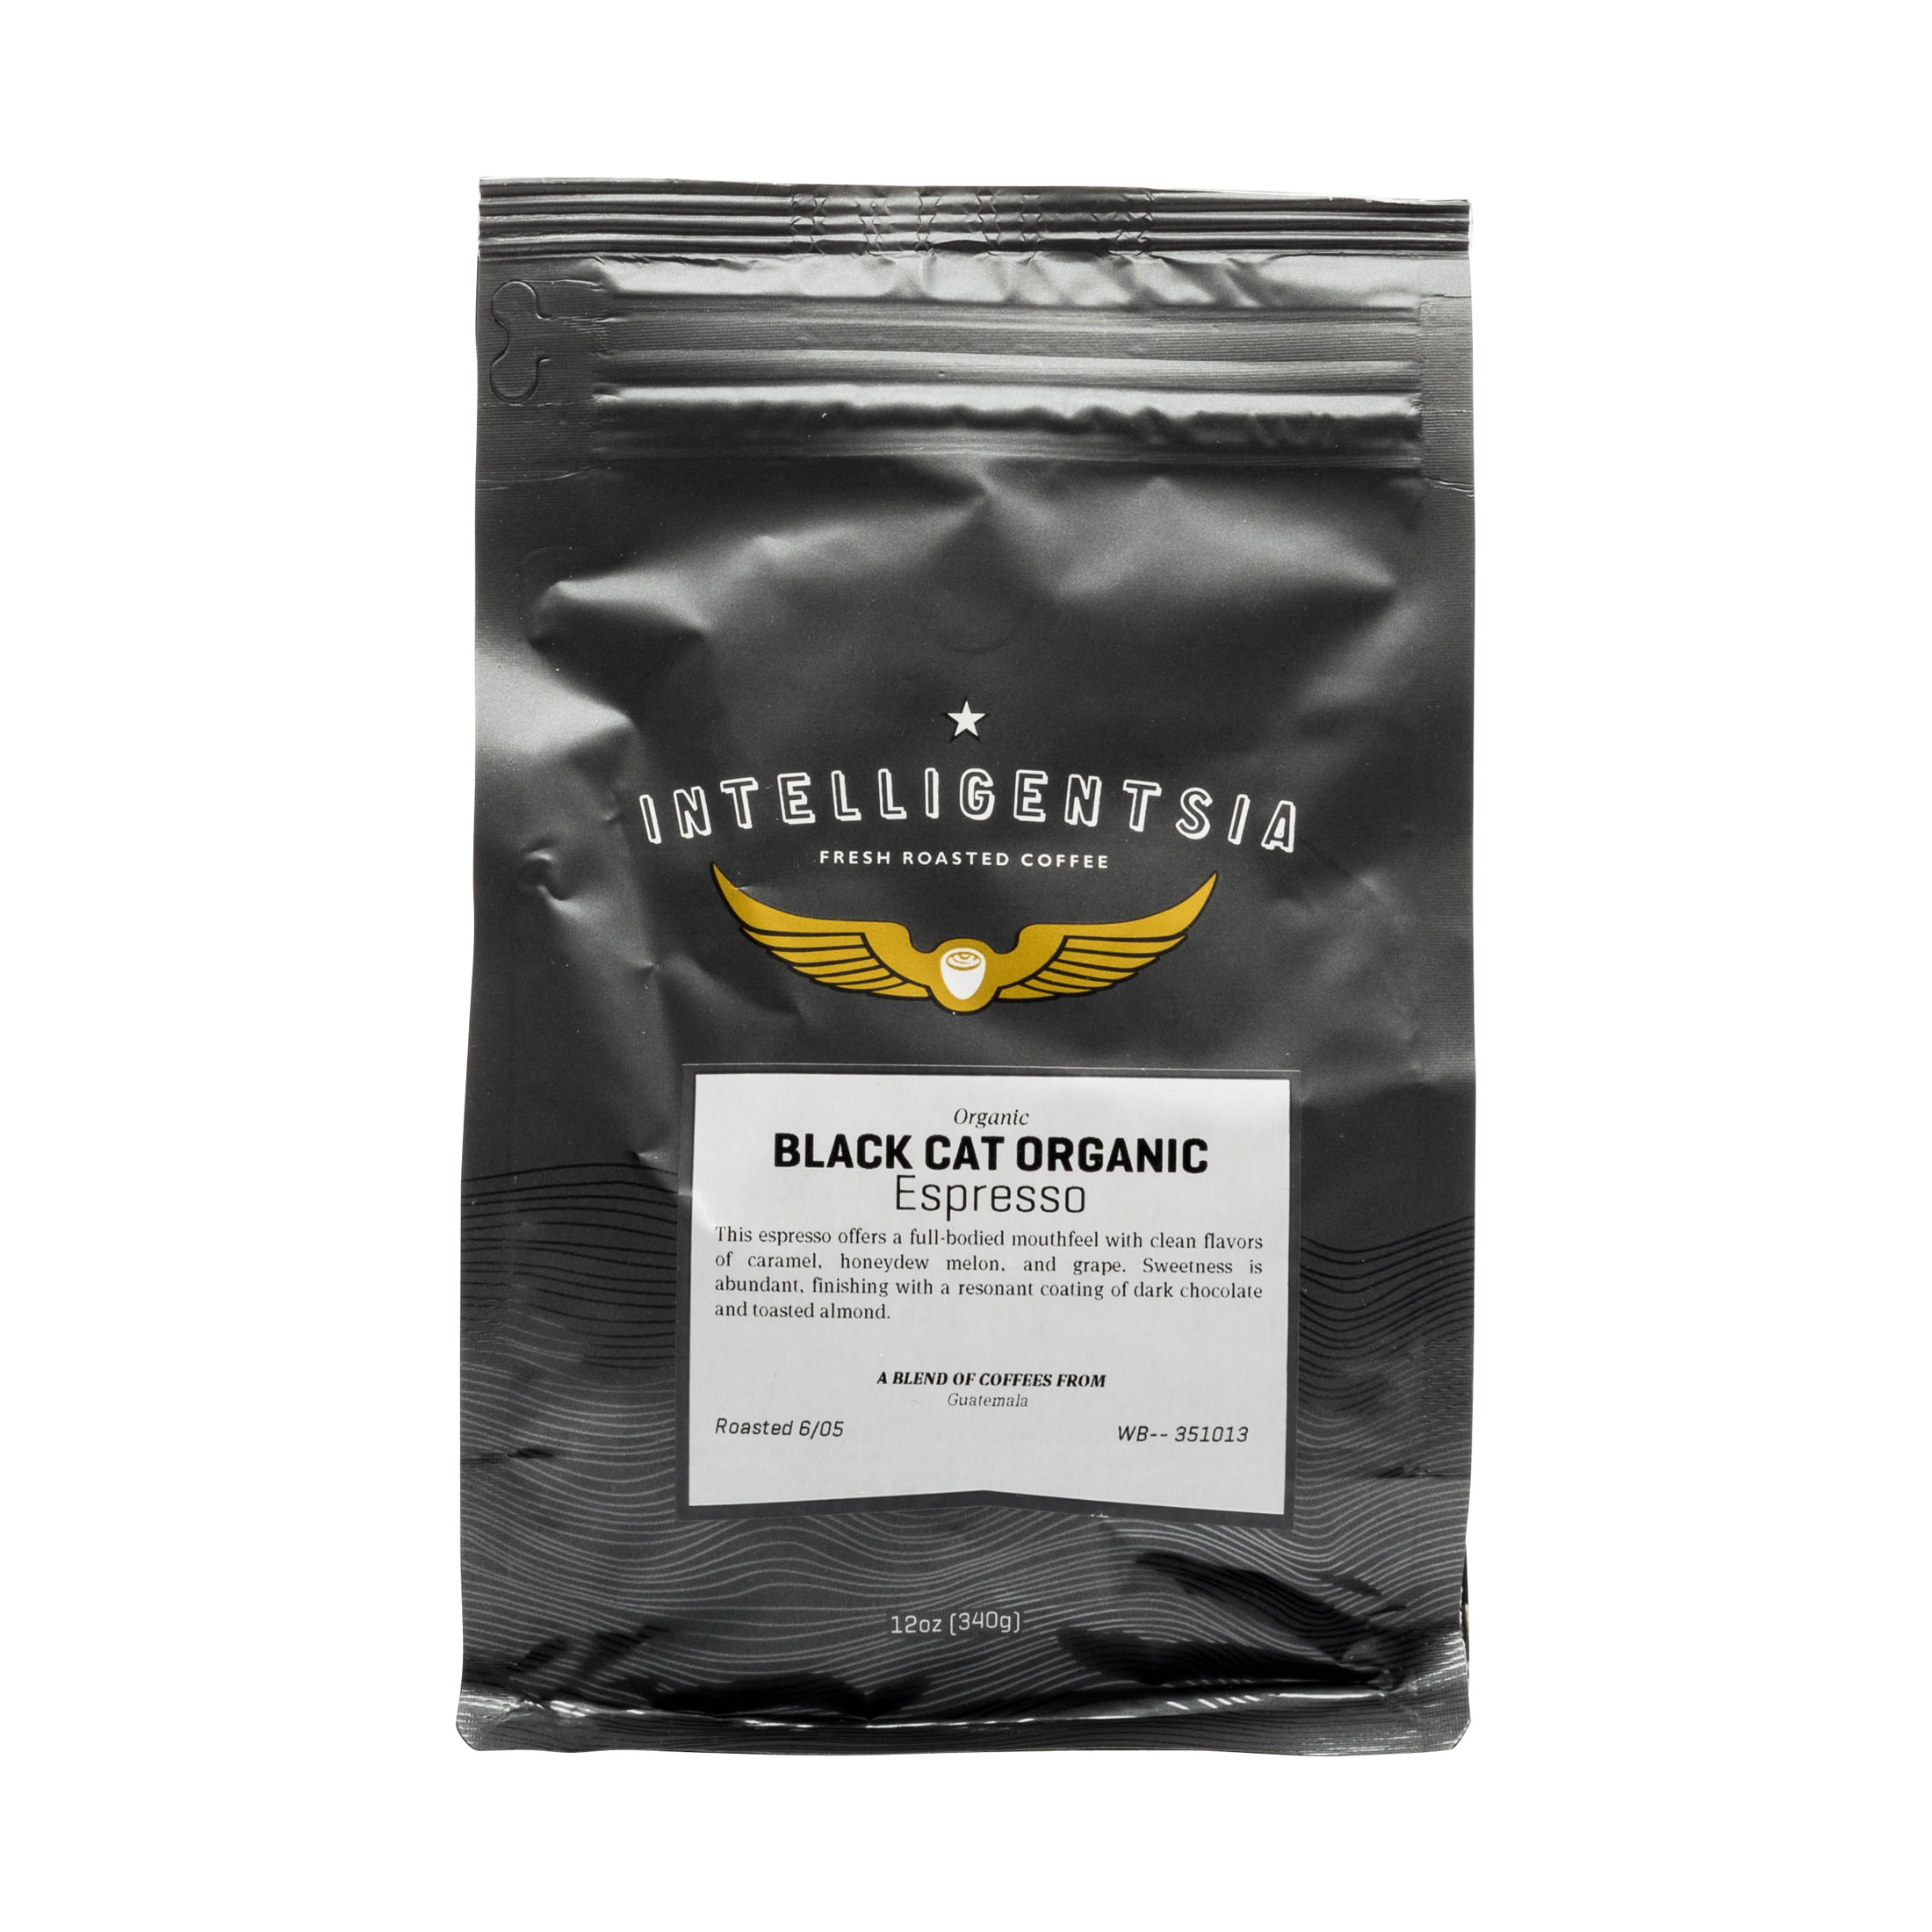 BLACK CAT ORGANIC ESPRESSO